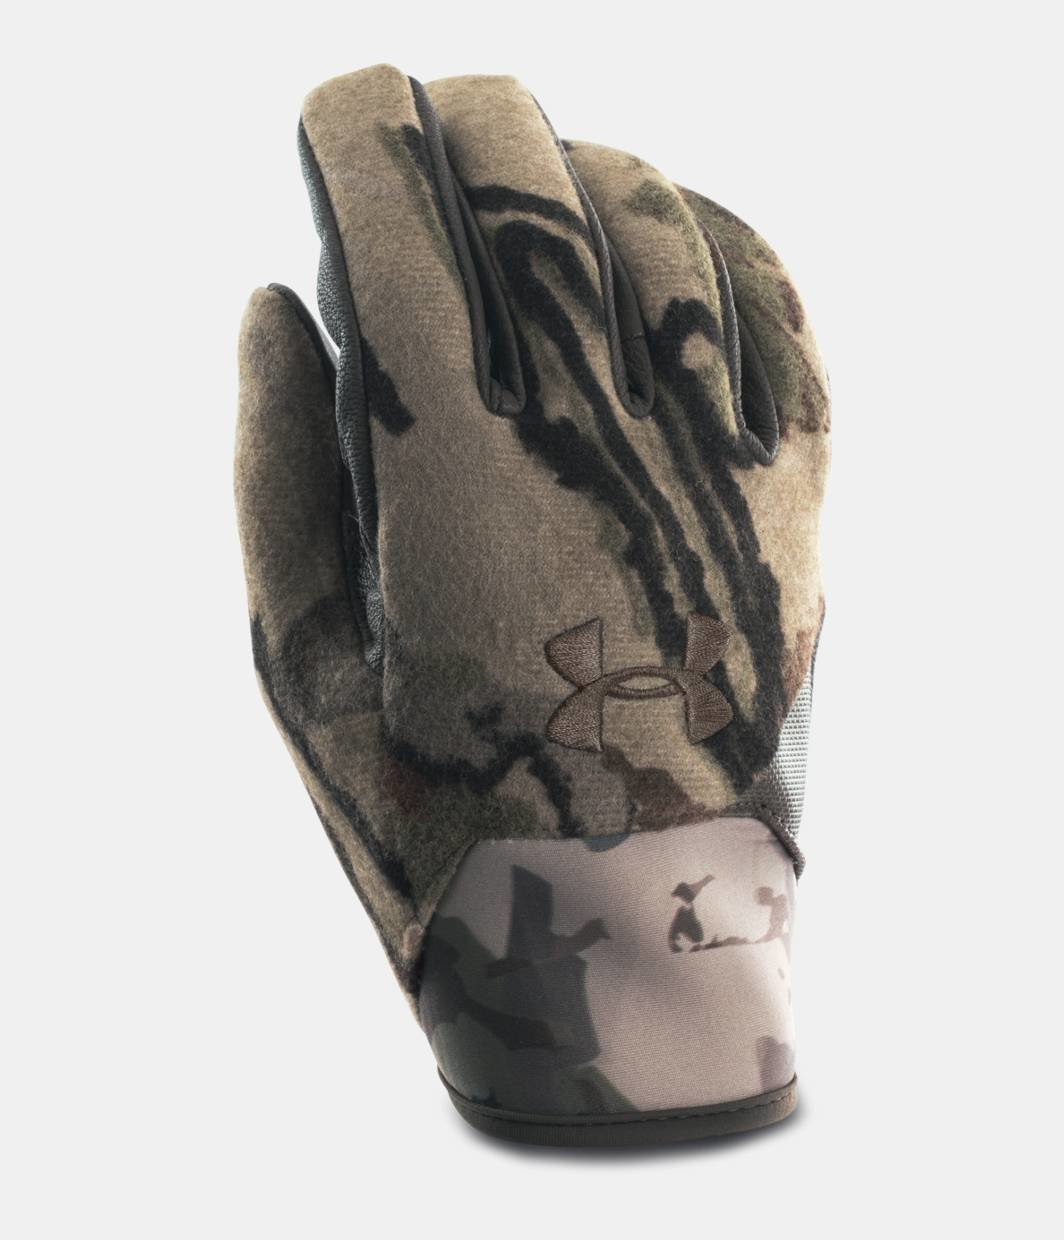 Under Armour Men's UA Ridge Reaper Trigger Gloves -Small